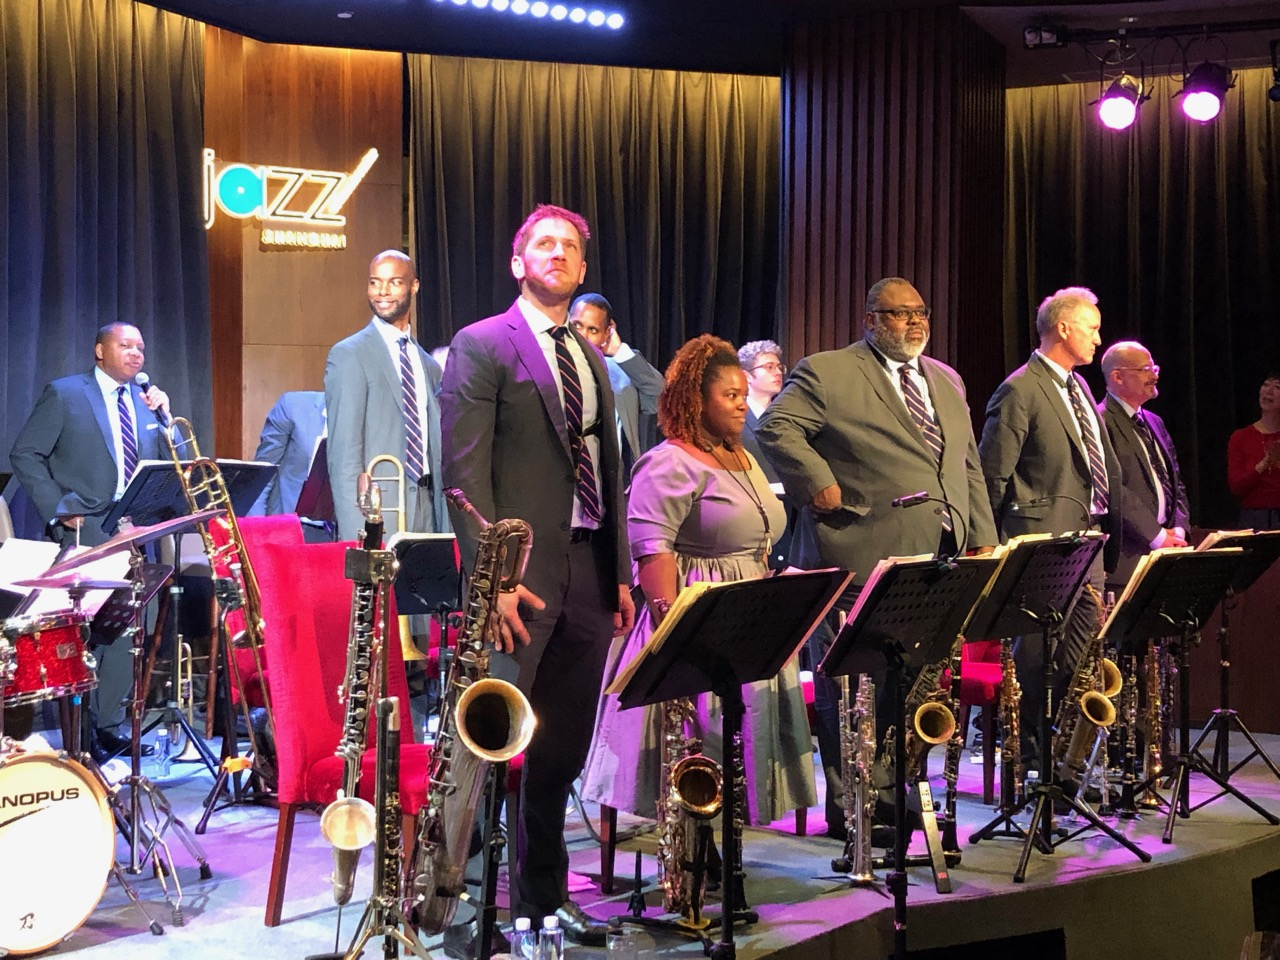 That's a mighty big horn section! Wynton Marsalis (back left) and big band at Jazz at Lincoln Center Shanghai